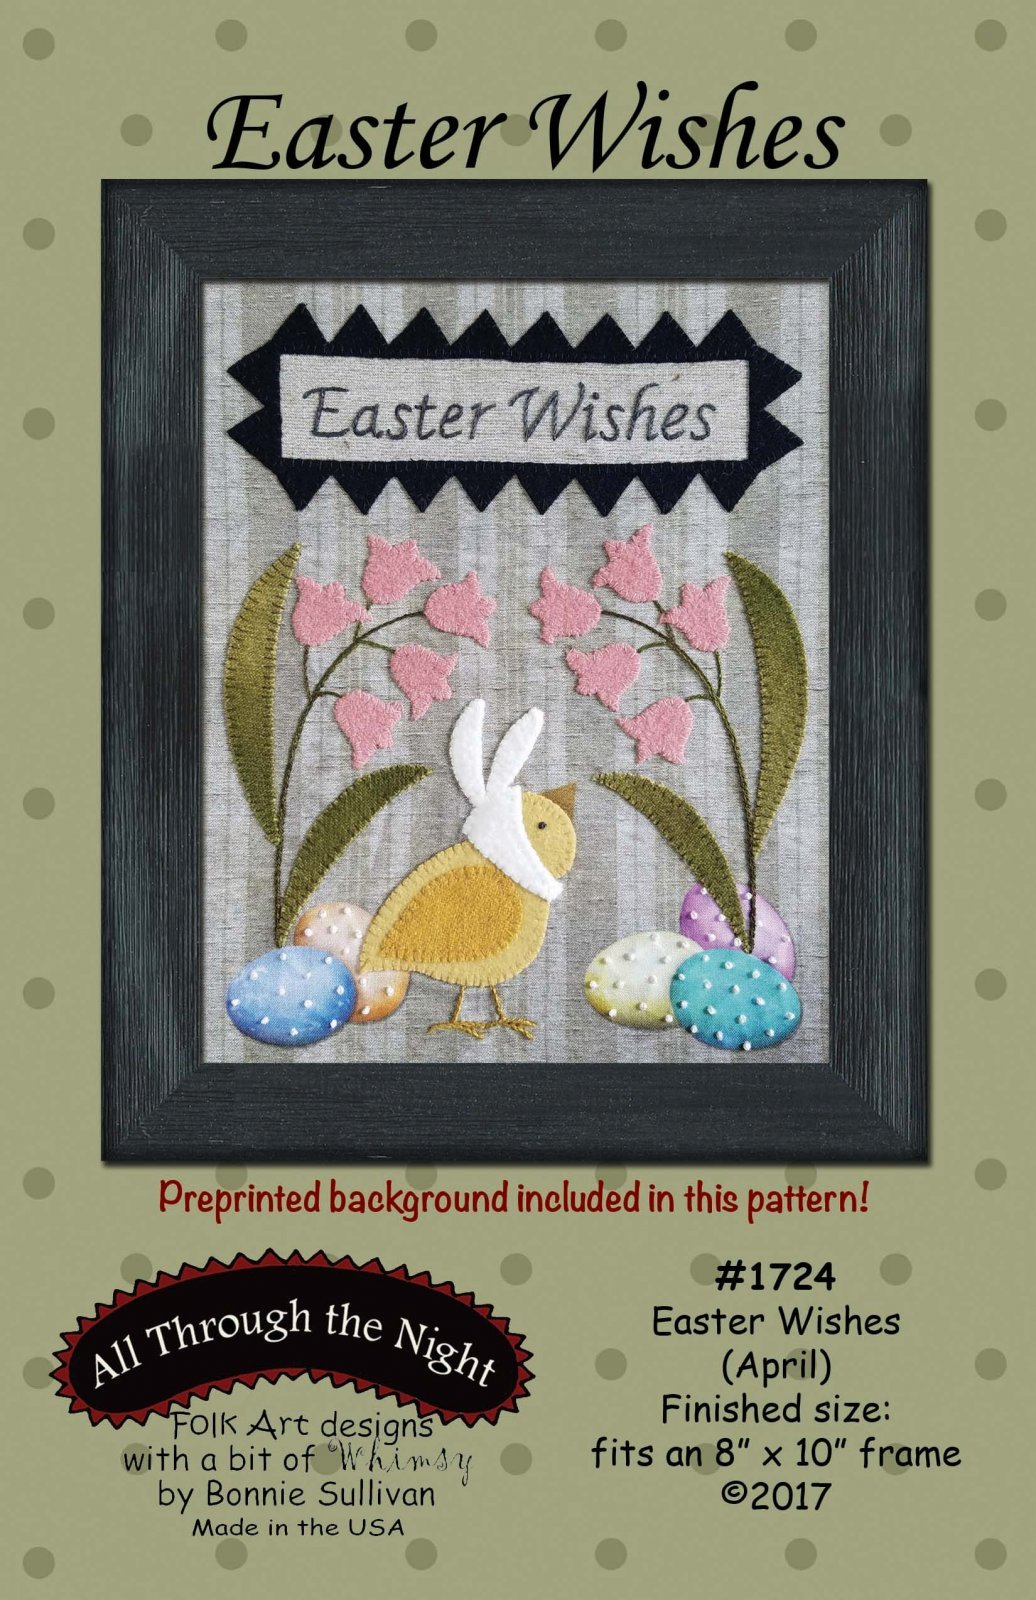 Easter Wishes Wool Kit